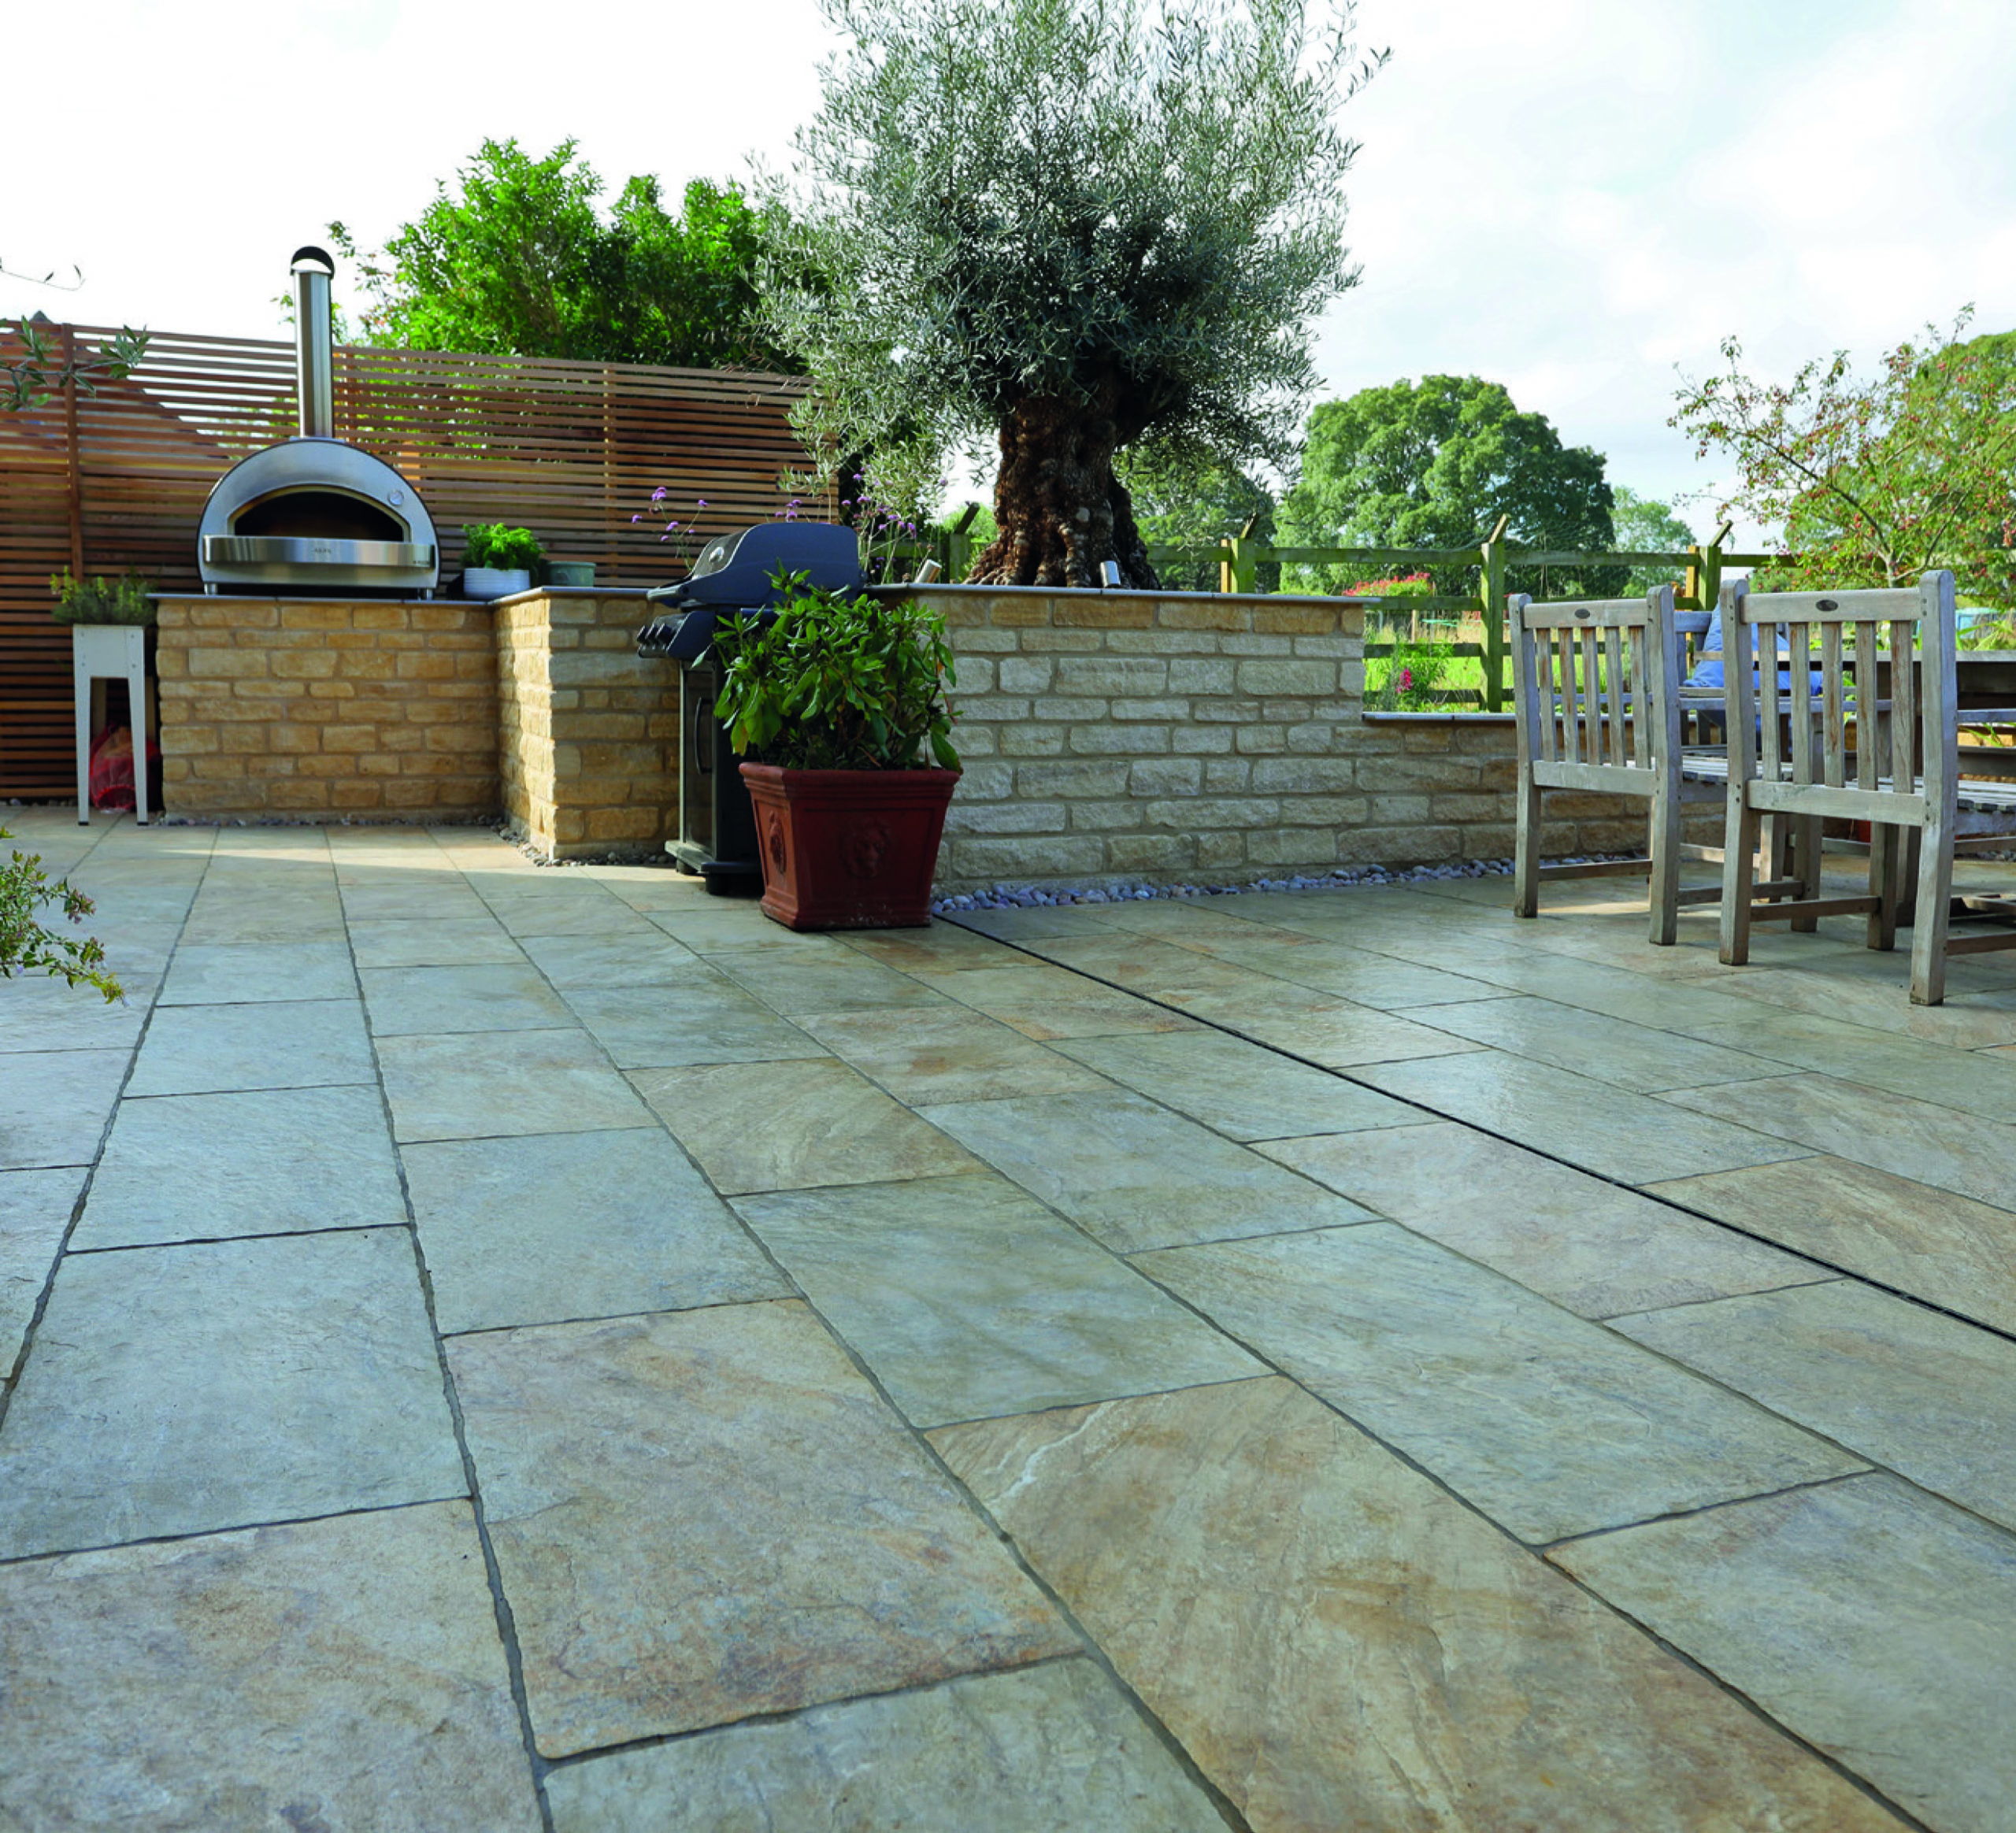 The popularity of porcelain paving in garden design and how to install it